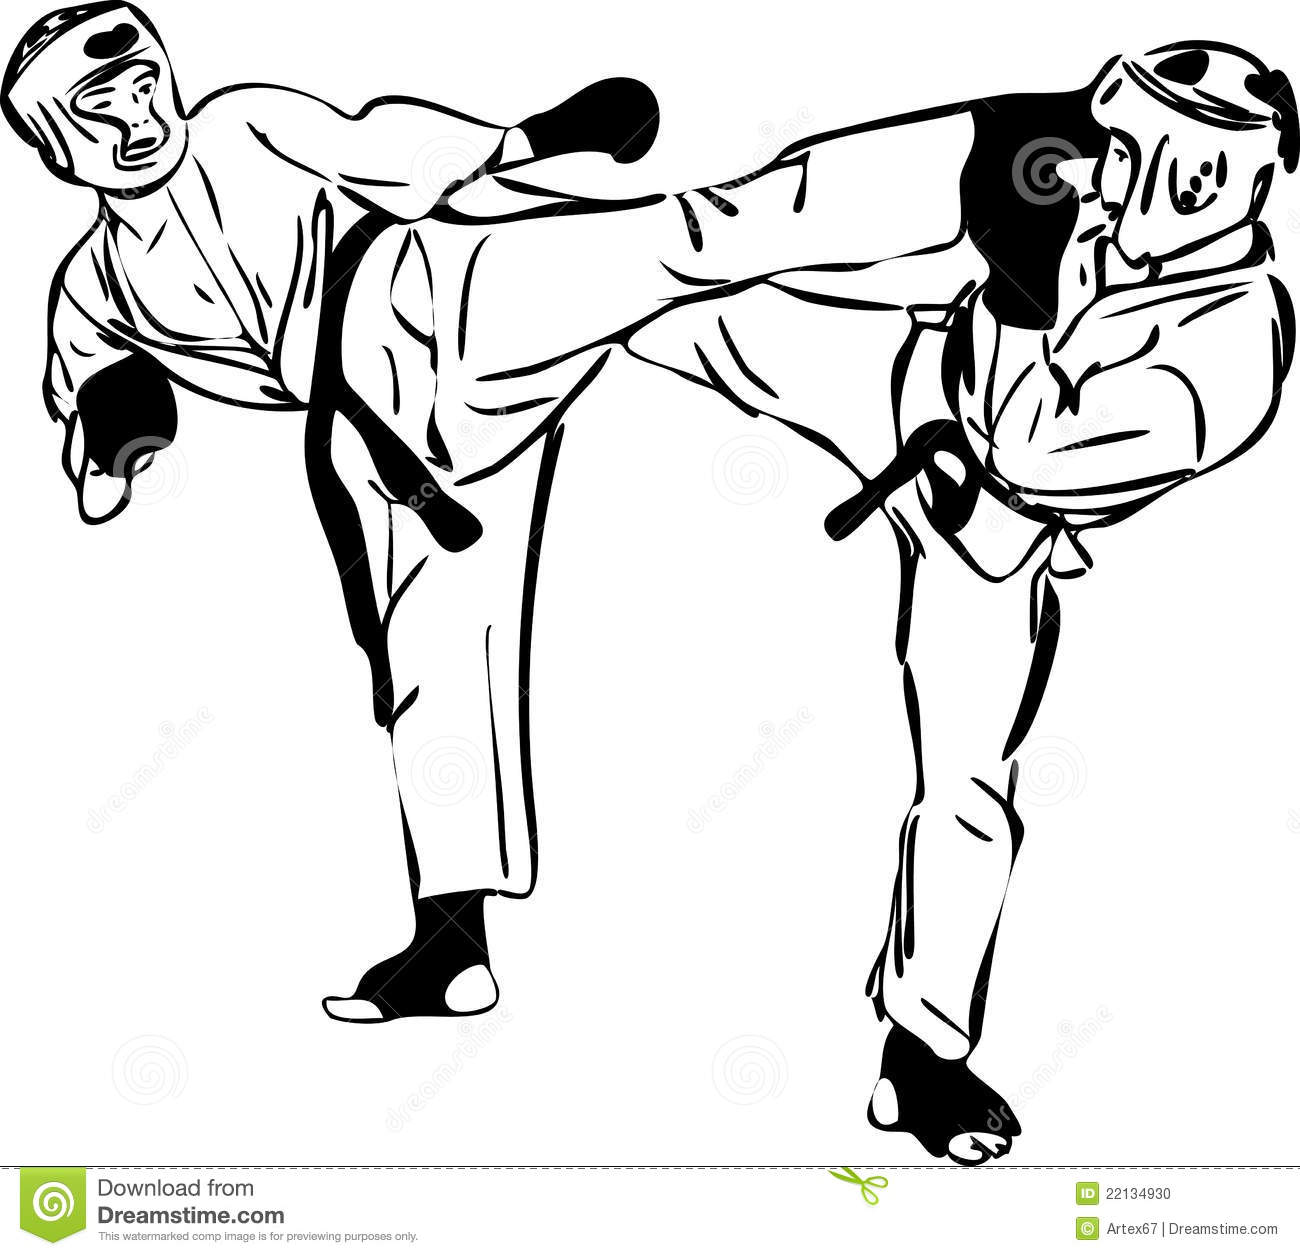 Sparring clipart #8, Download drawings